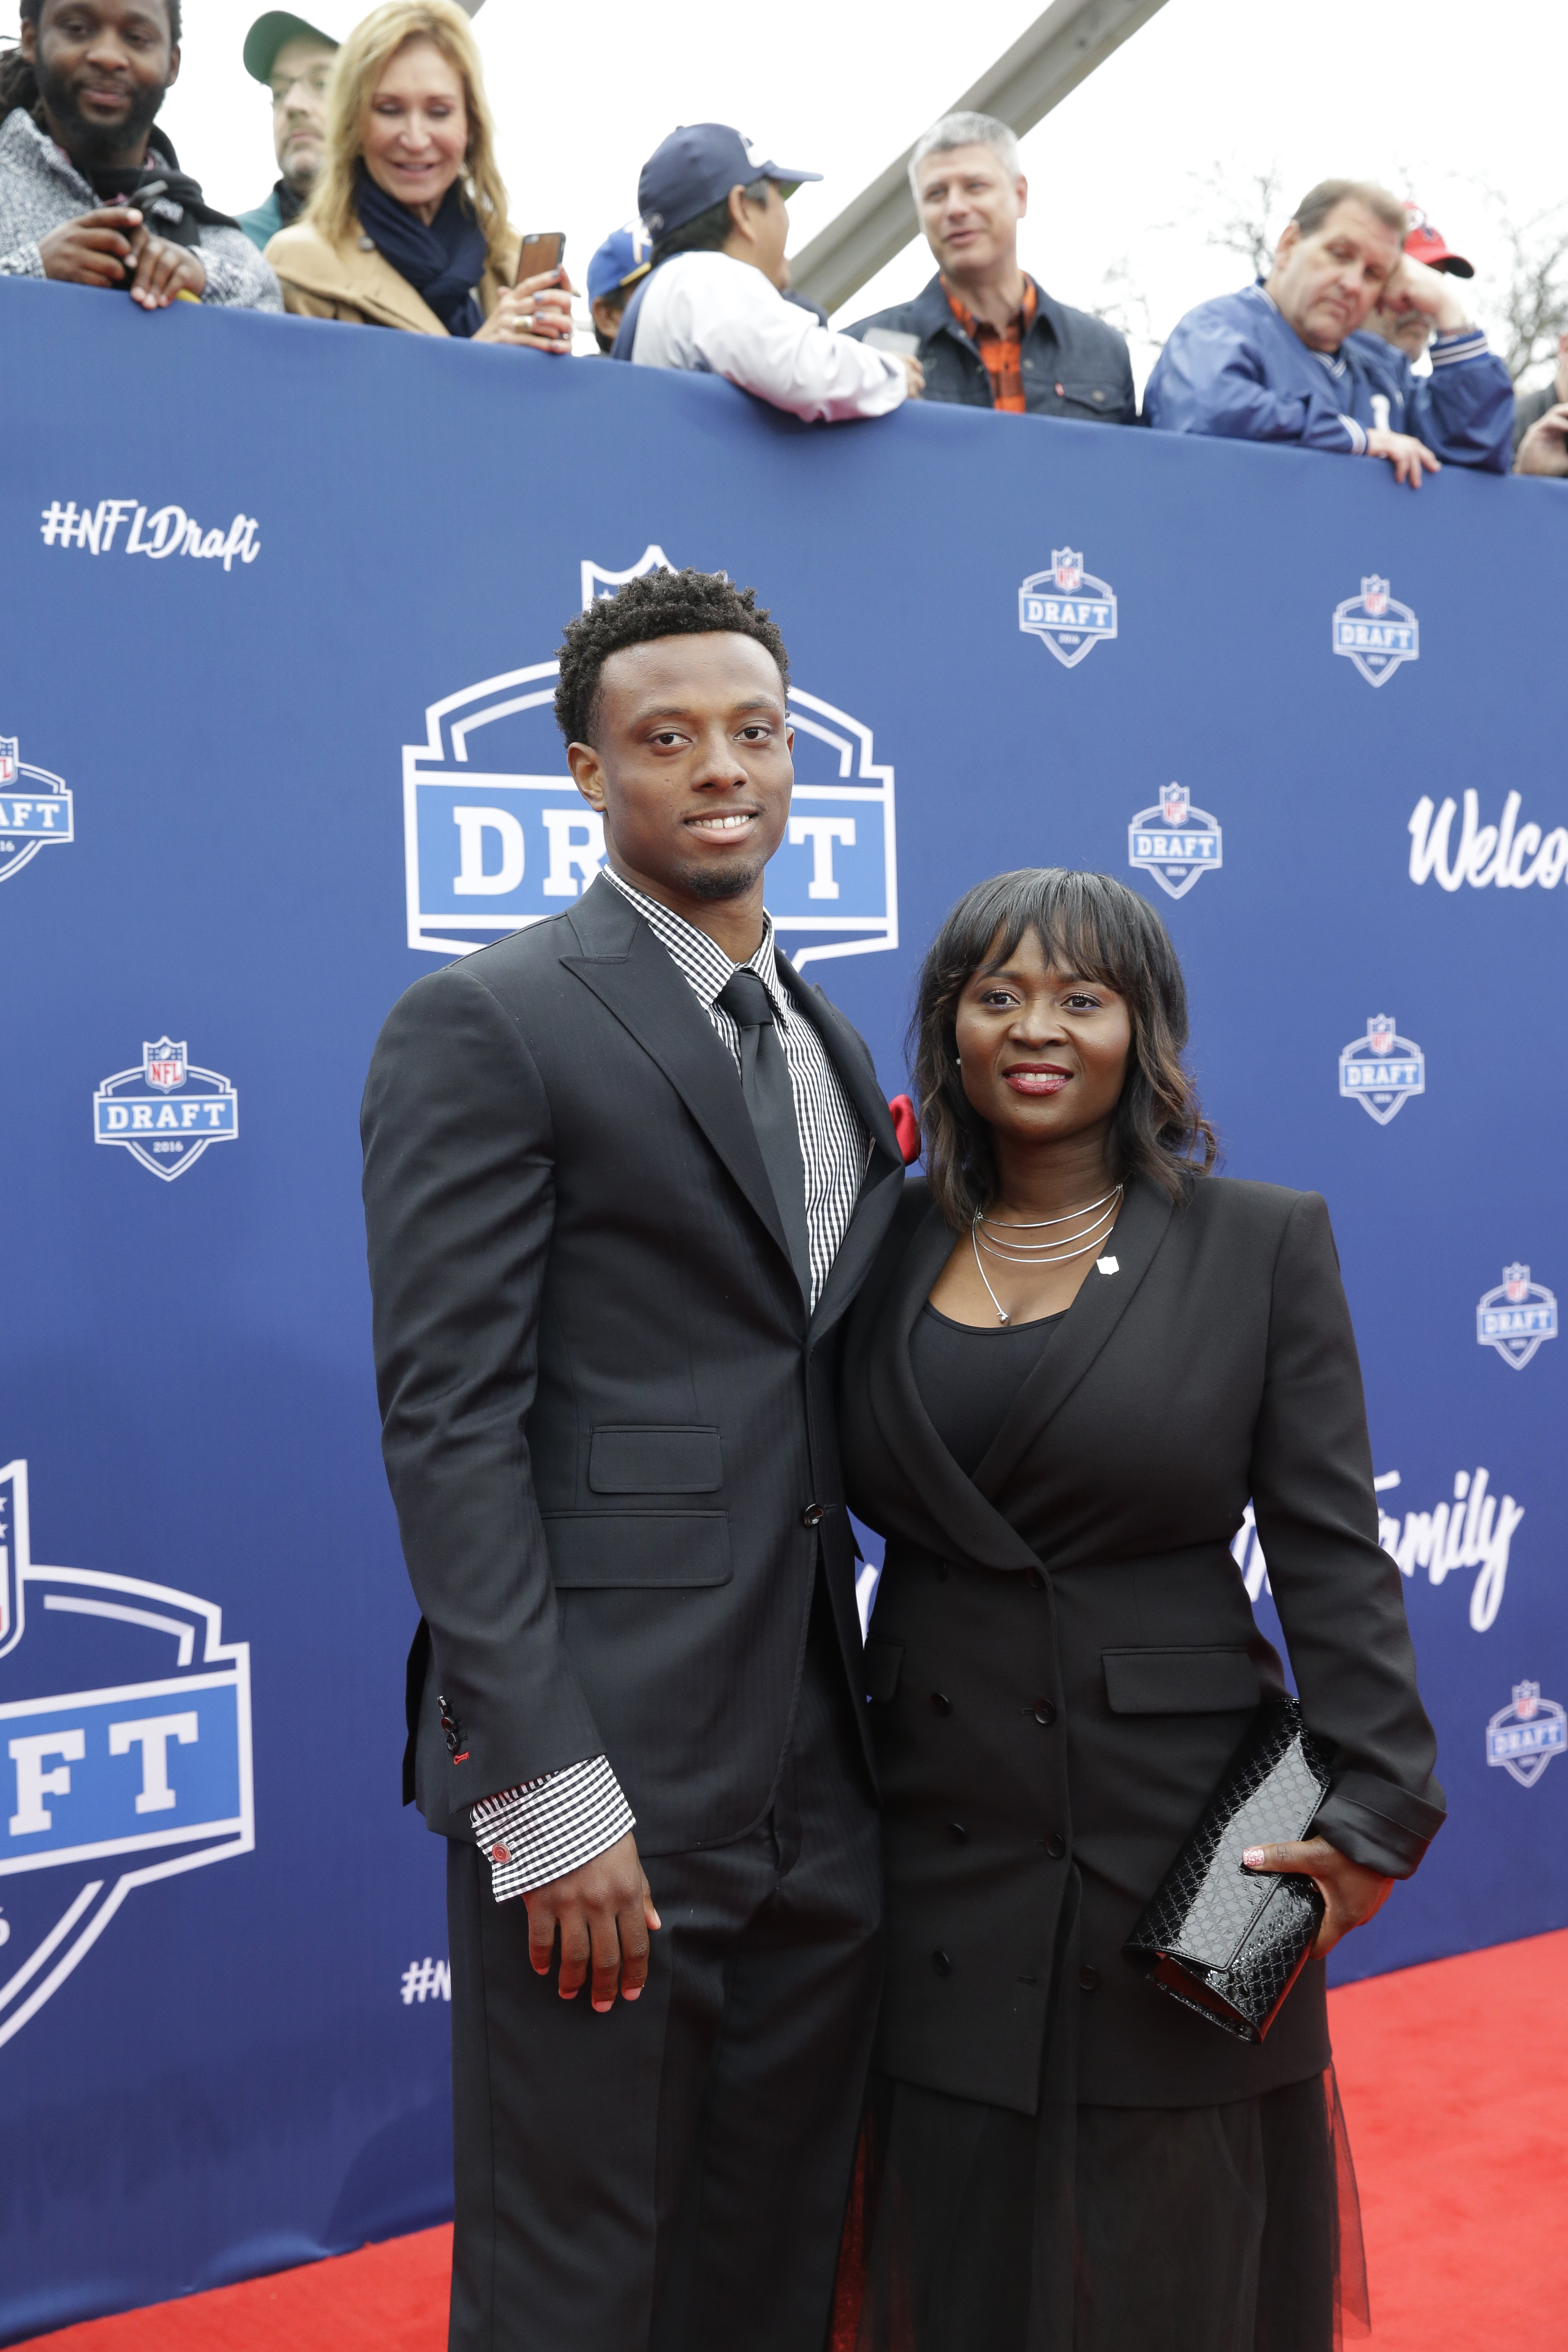 Ohio States Eli Apple, left, poses for photos upon arriving for the first round of the 2016 NFL football draft at the Auditorium Theater of Roosevelt University, Thursday, April 28, 2016, in Chicago. (AP Photo/Nam Y. Huh)